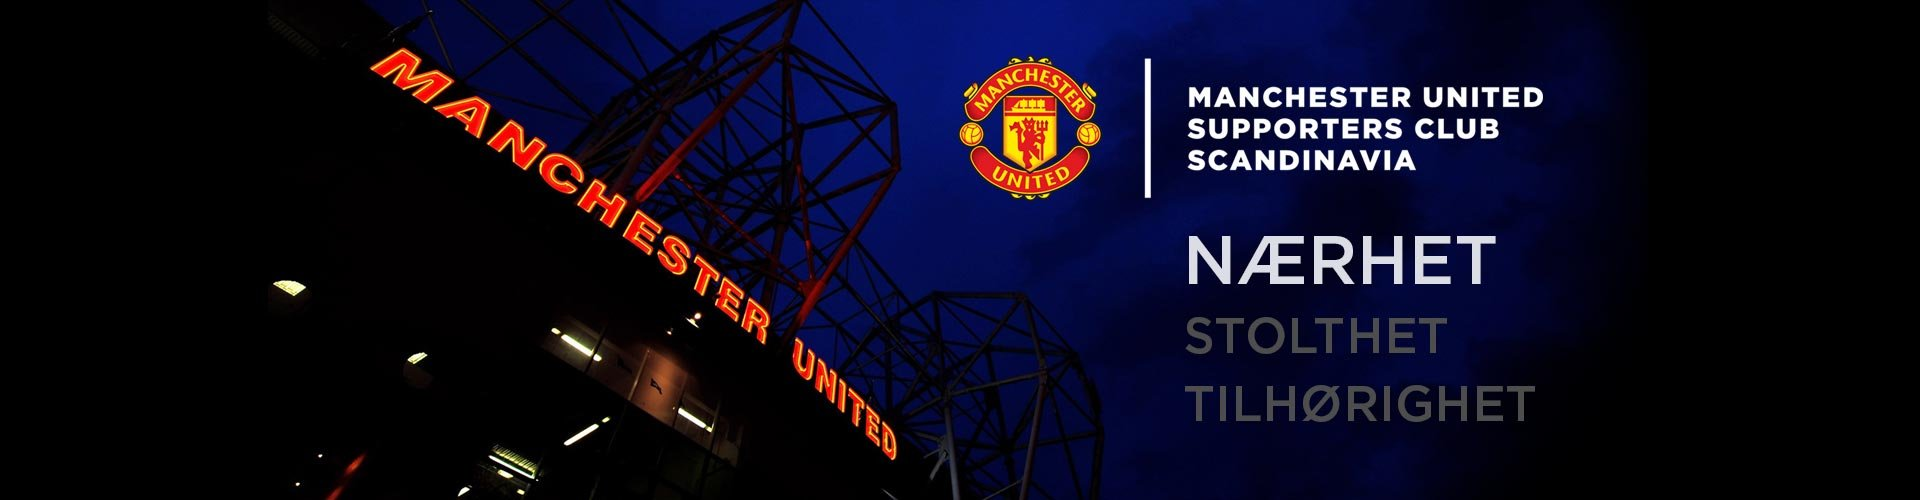 2017_travel_header_mufc_england_v2_1920x500